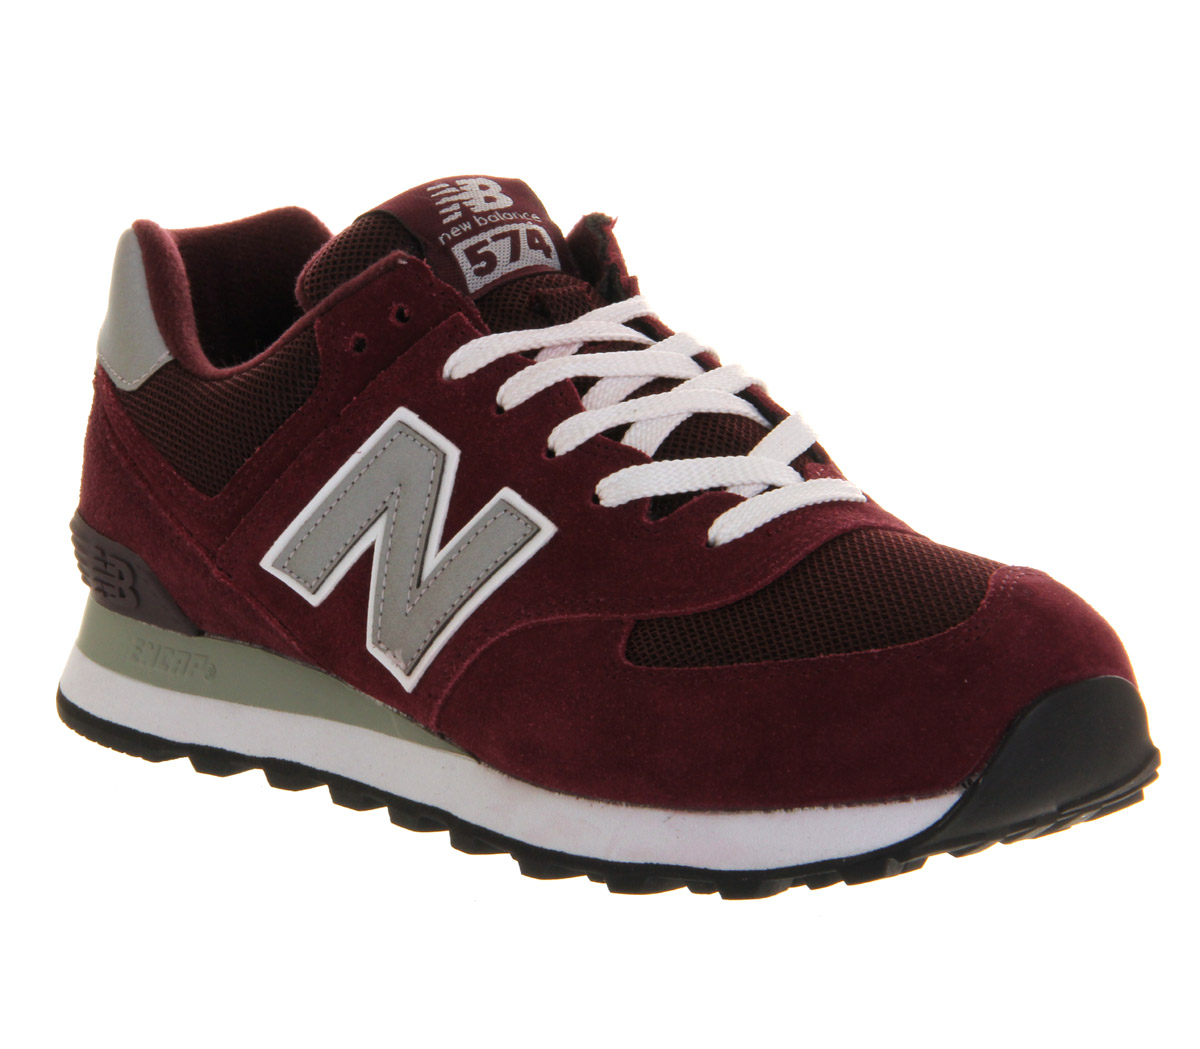 New-Balance-New-Balance-M574-DEEP-BURGUNDY-GREY-Trainers-Shoes